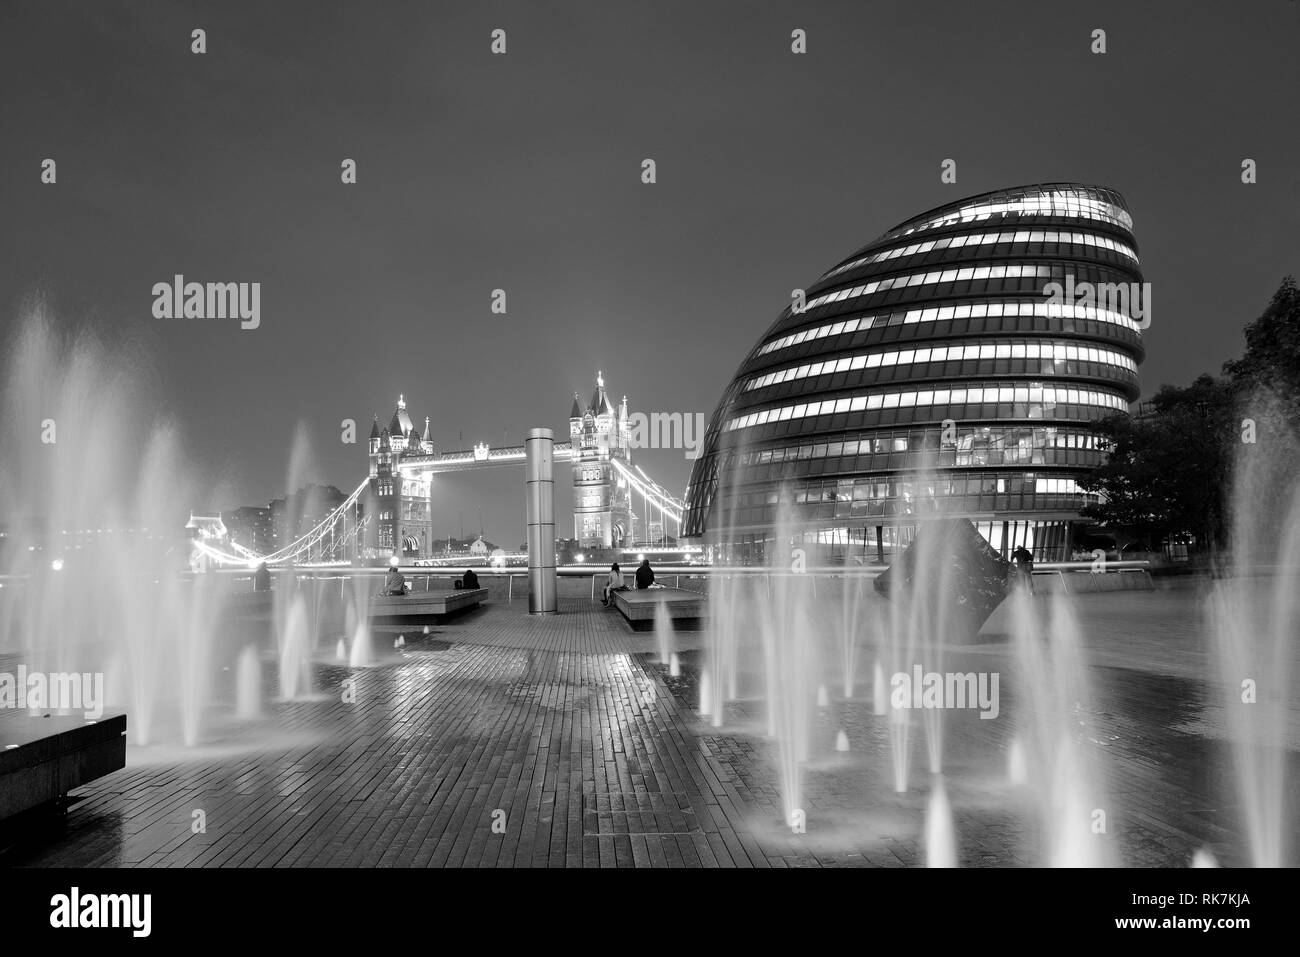 London Tower Bridge, City Hall and fountain at night in business district. - Stock Image